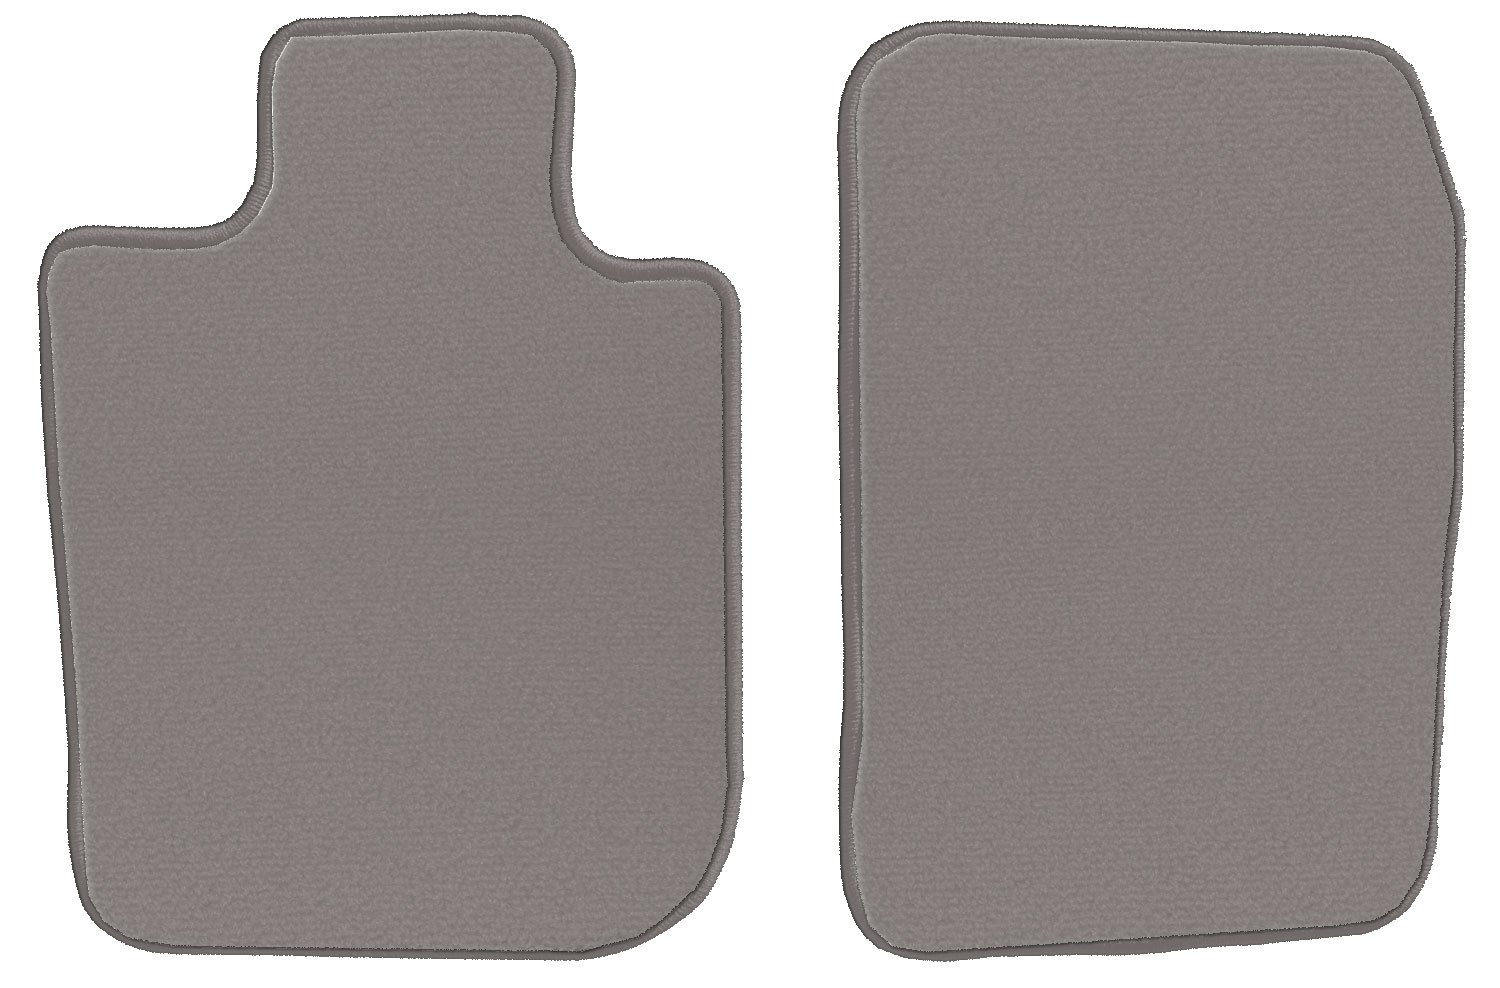 1993 1996 Nissan 300ZX Grey Loop Driver /& Passenger 1992 1995 1994 1991 GGBAILEY D3458A-F1A-GY-LP Custom Fit Automotive Carpet Floor Mats for 1990